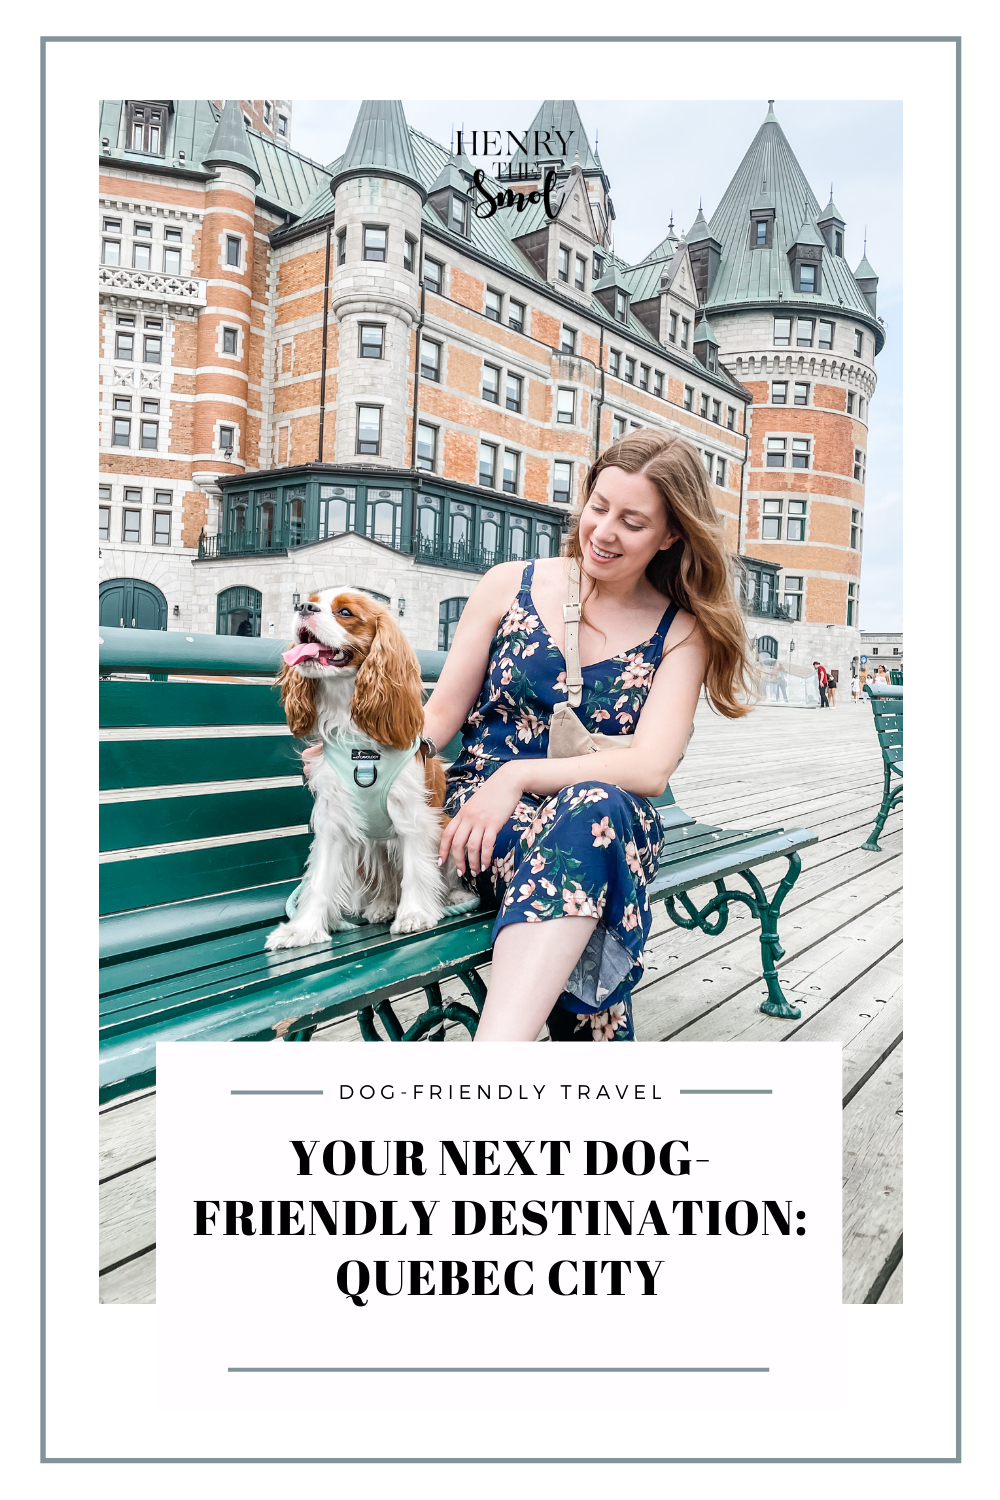 Dog-Friendly Quebec City: Our Dog\'s First Road Trip